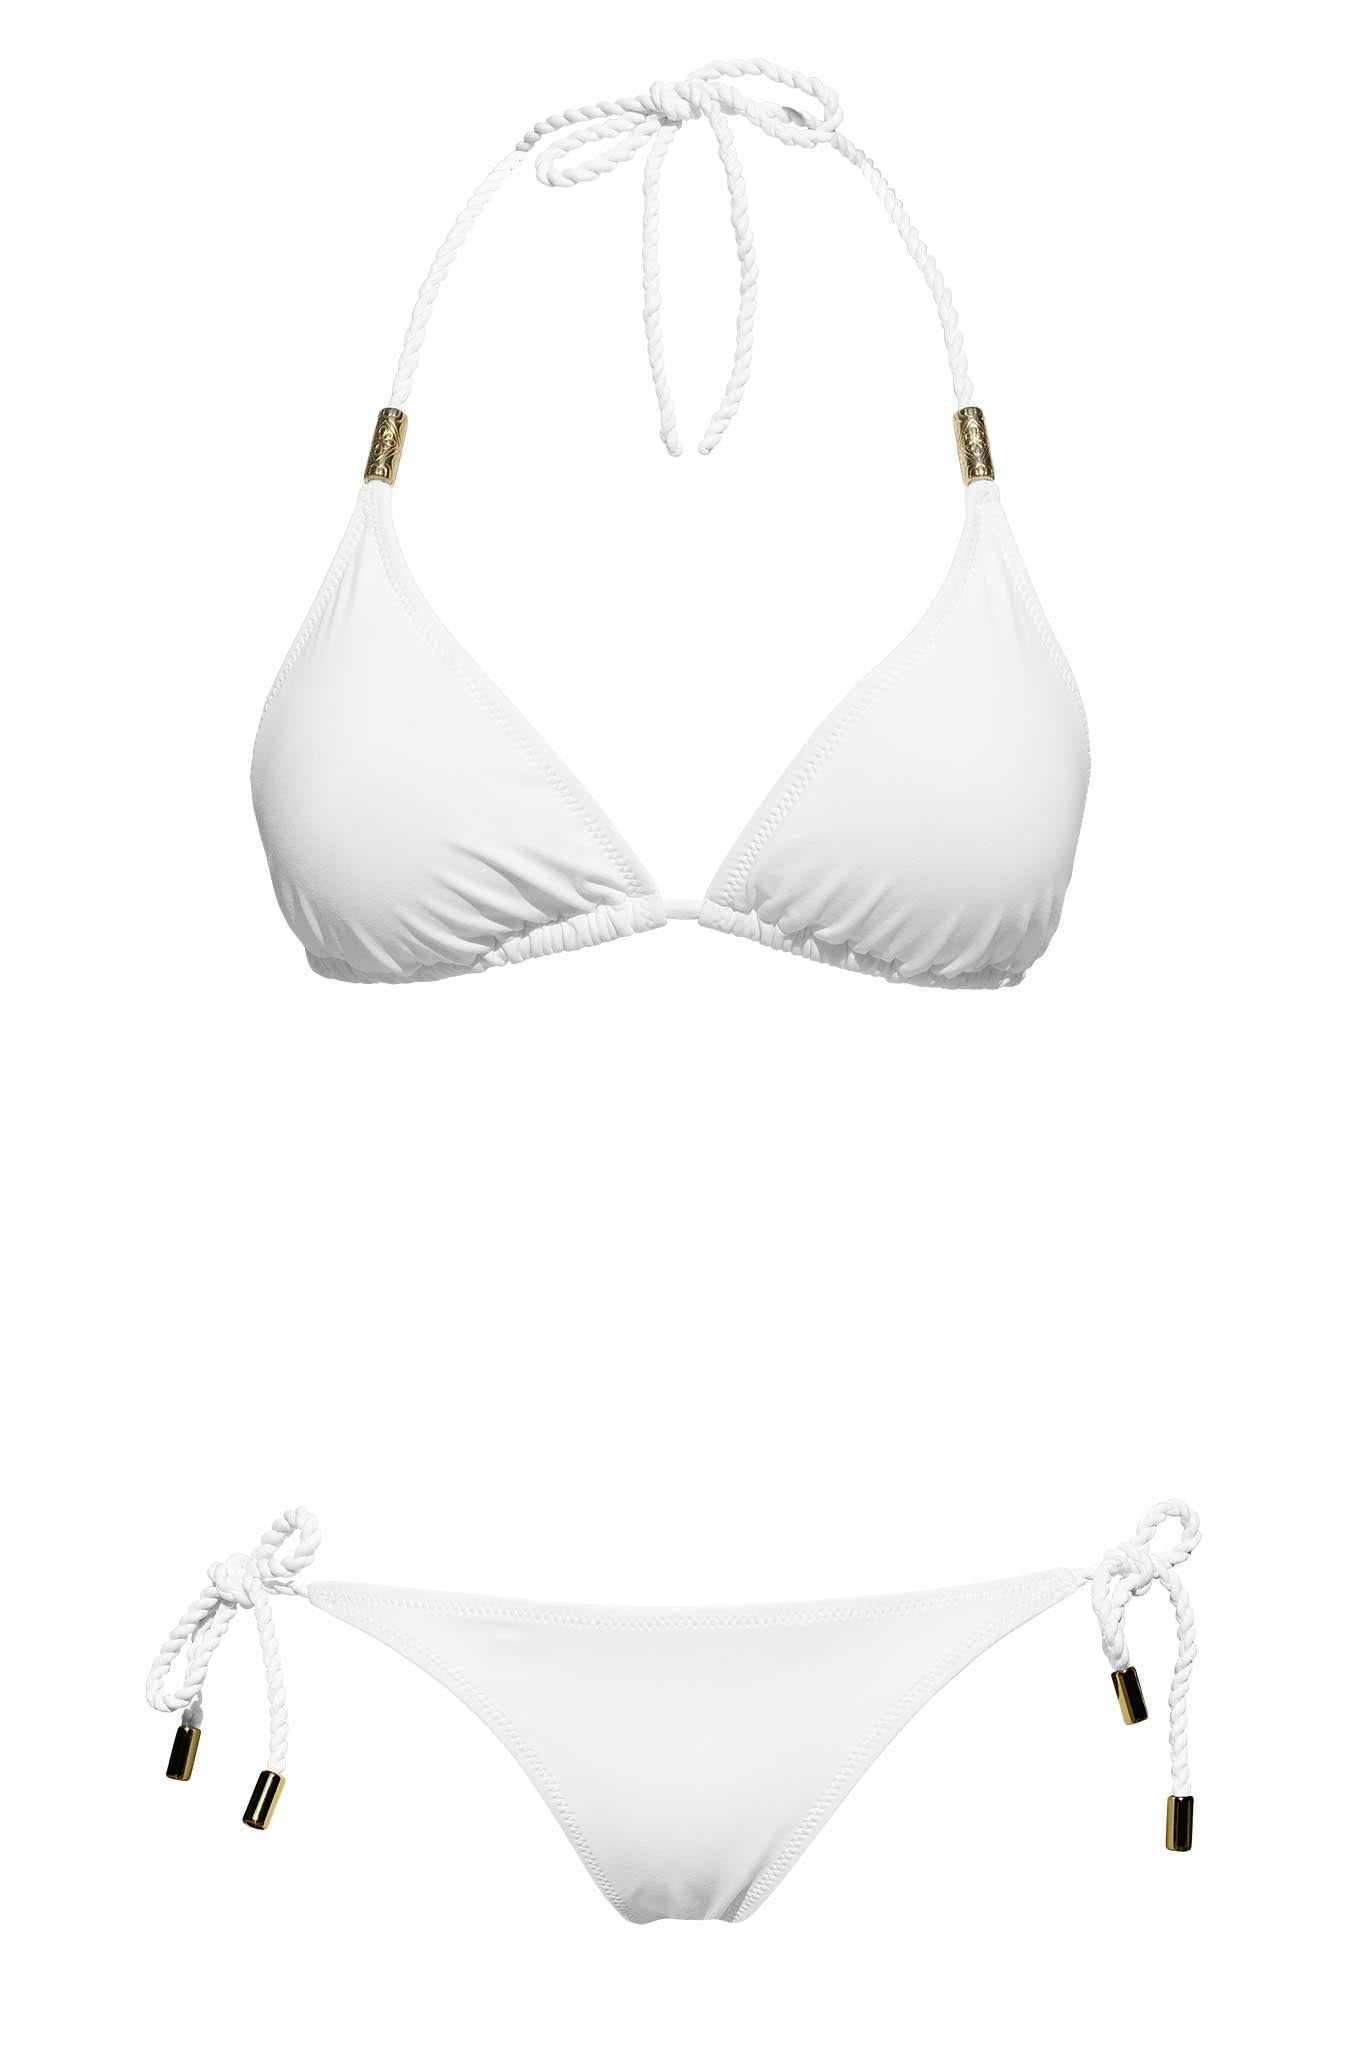 S10 Samoa Triangle Top - pure white & Corfu Side-tie bottom - pure white swimwear bikini set